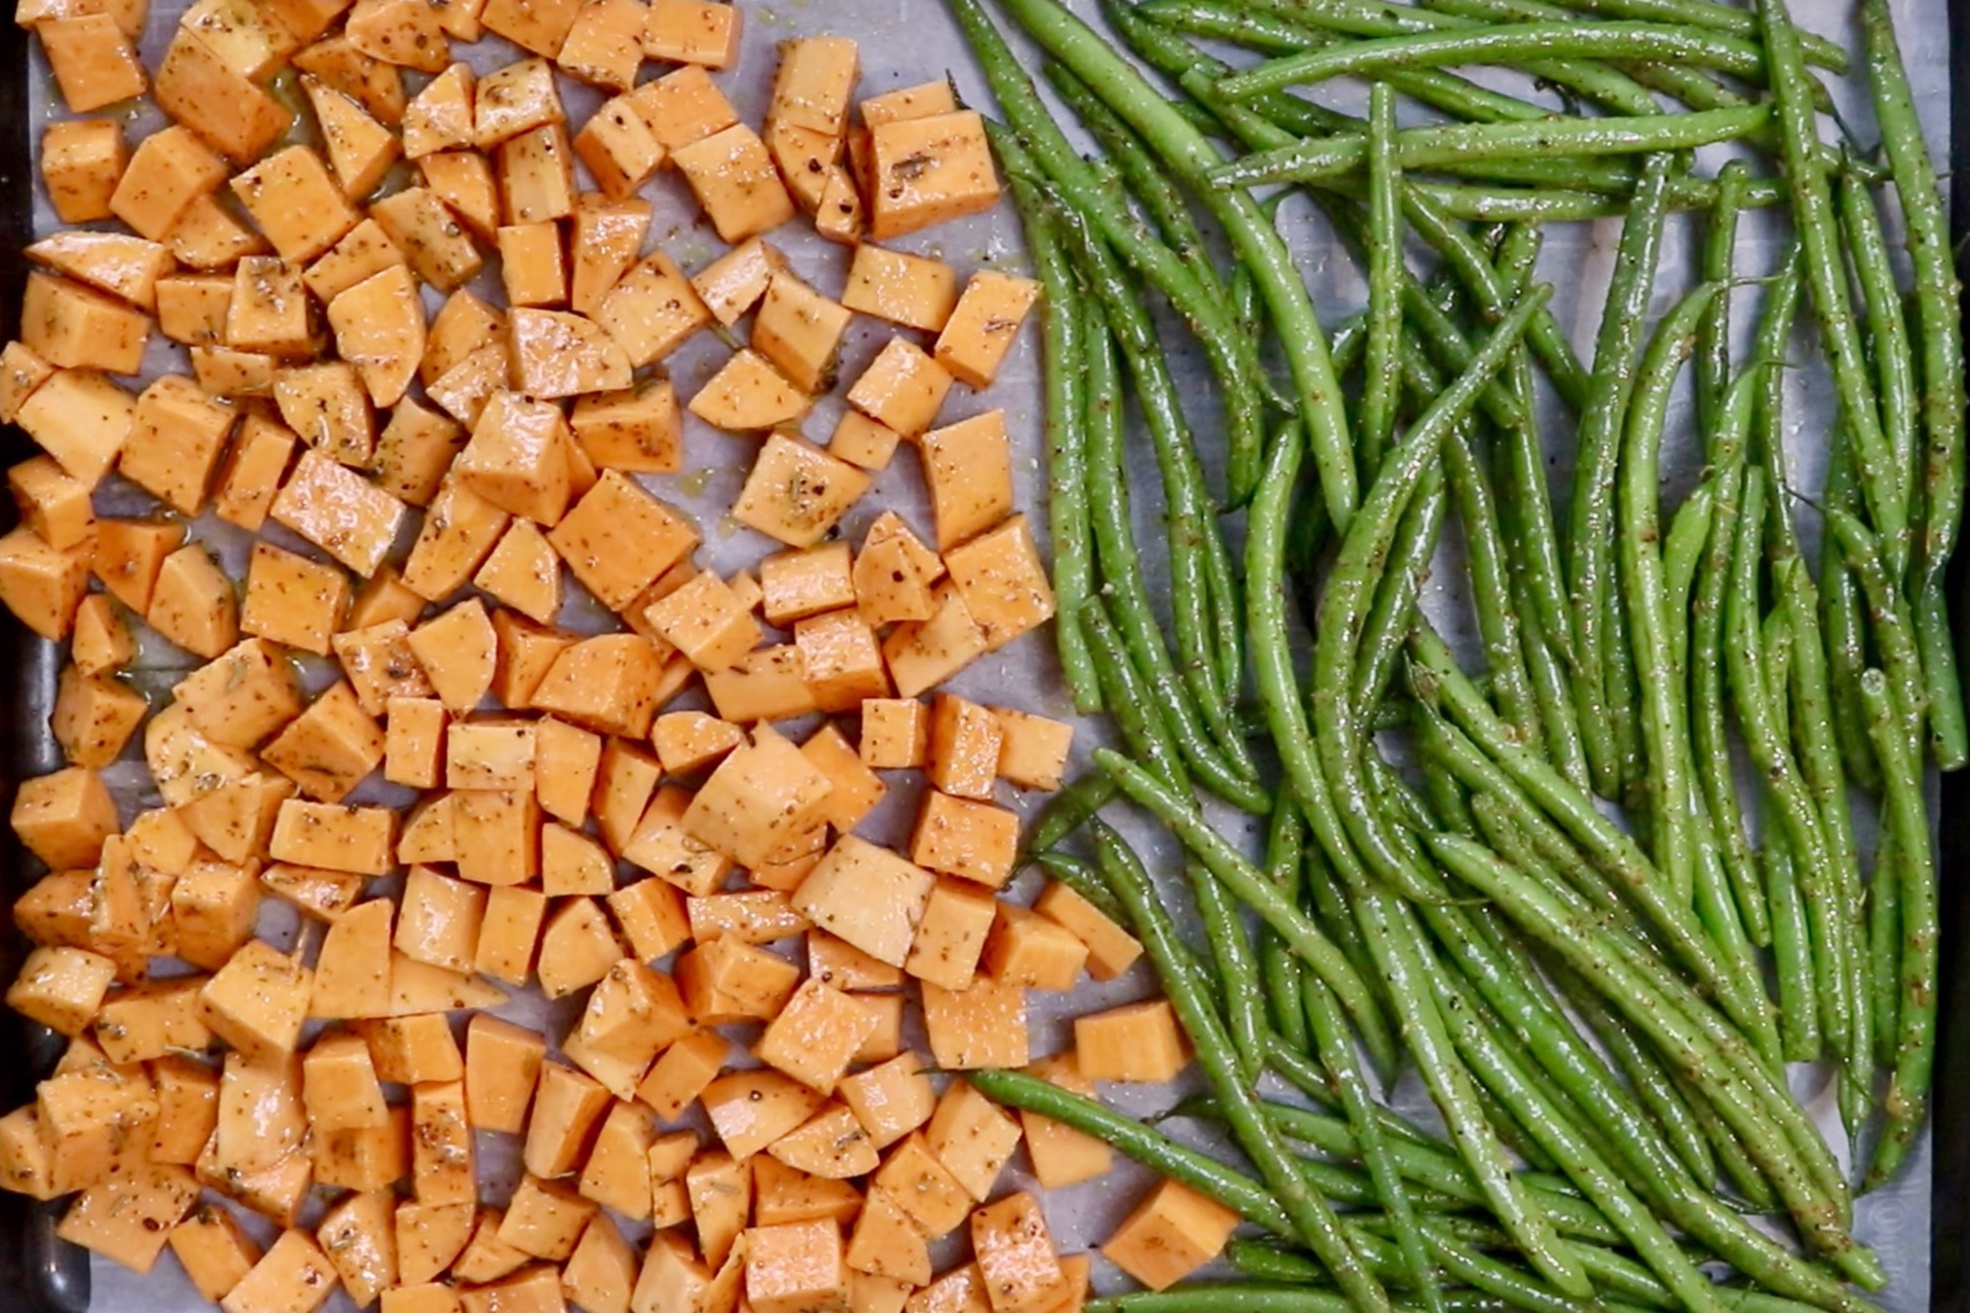 5. Spread veggies evenly on the baking sheet. Cook for 20 minutes. -